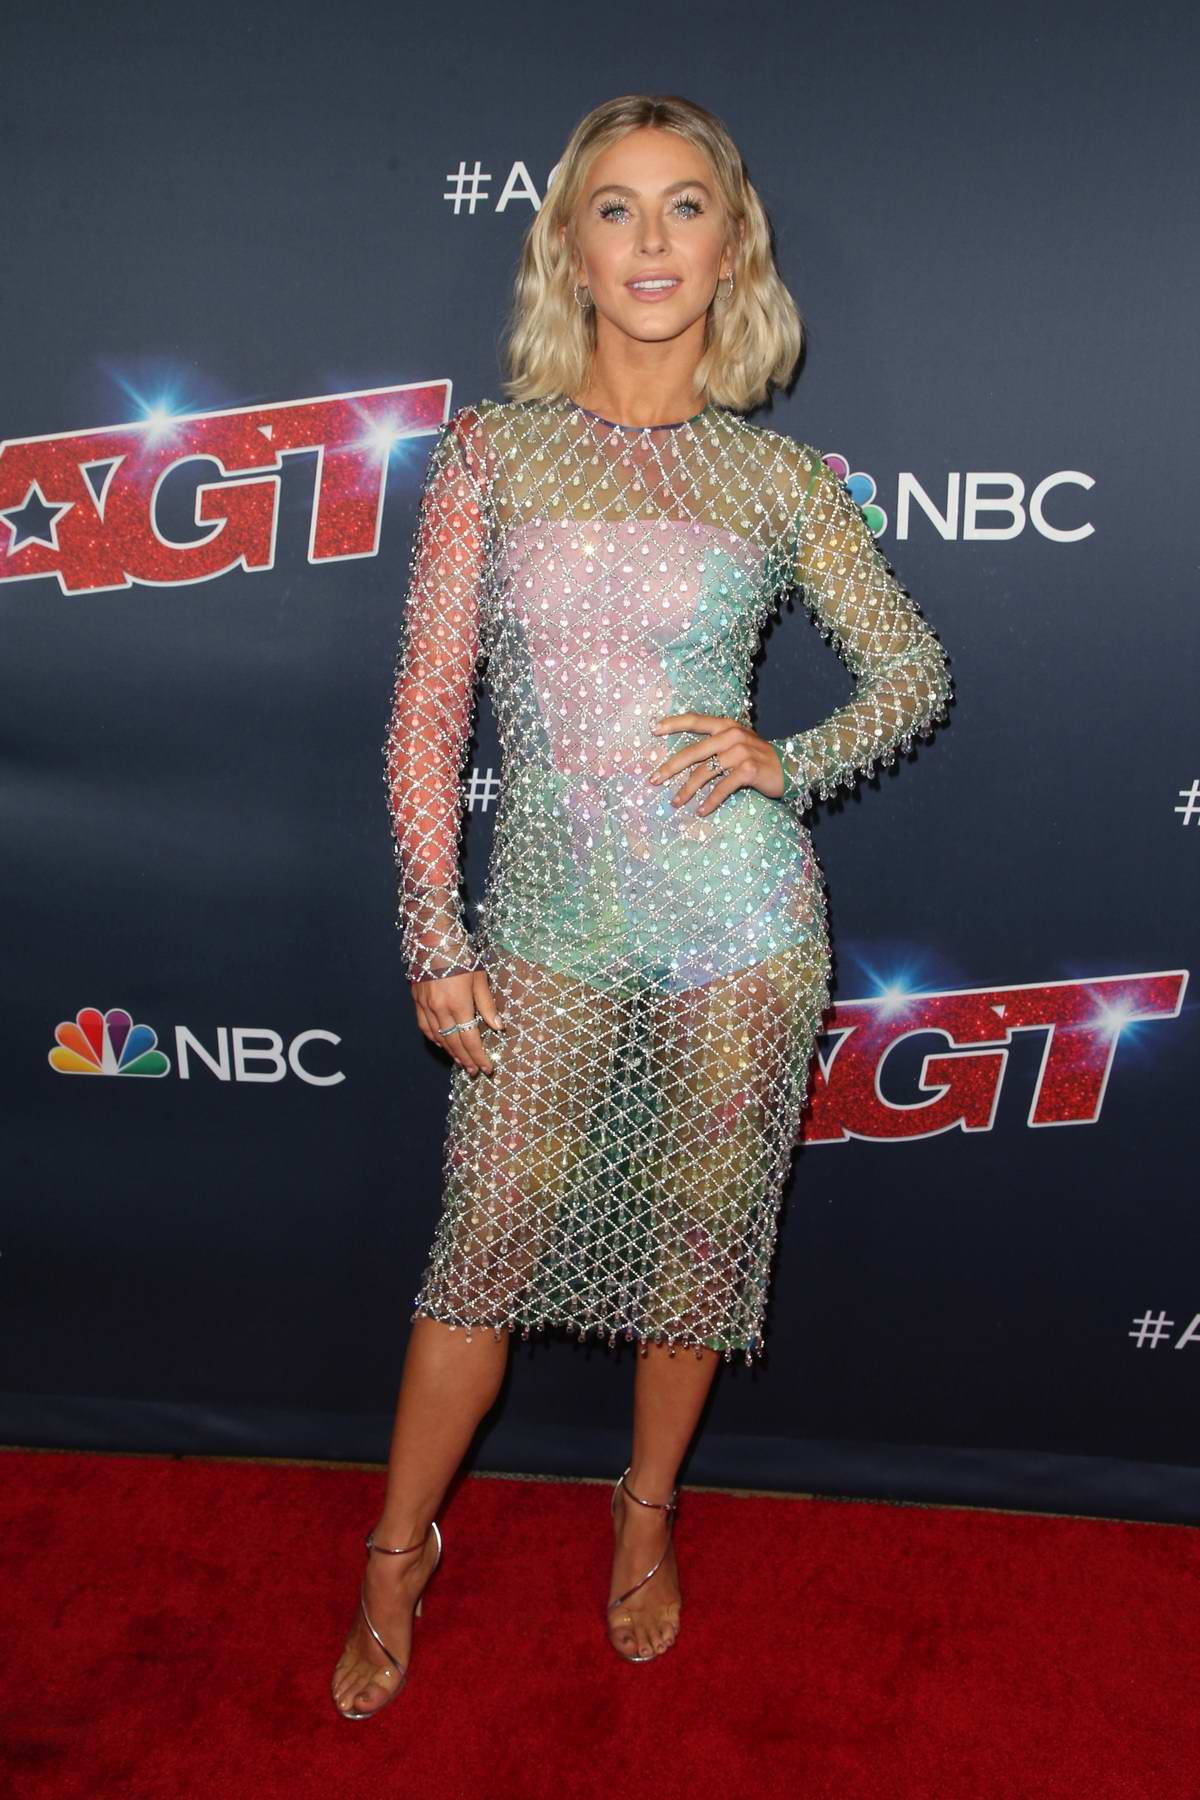 Julianne Hough attends the 'America's Got Talent' Season 14 Live Show Red Carpet in Hollywood, California